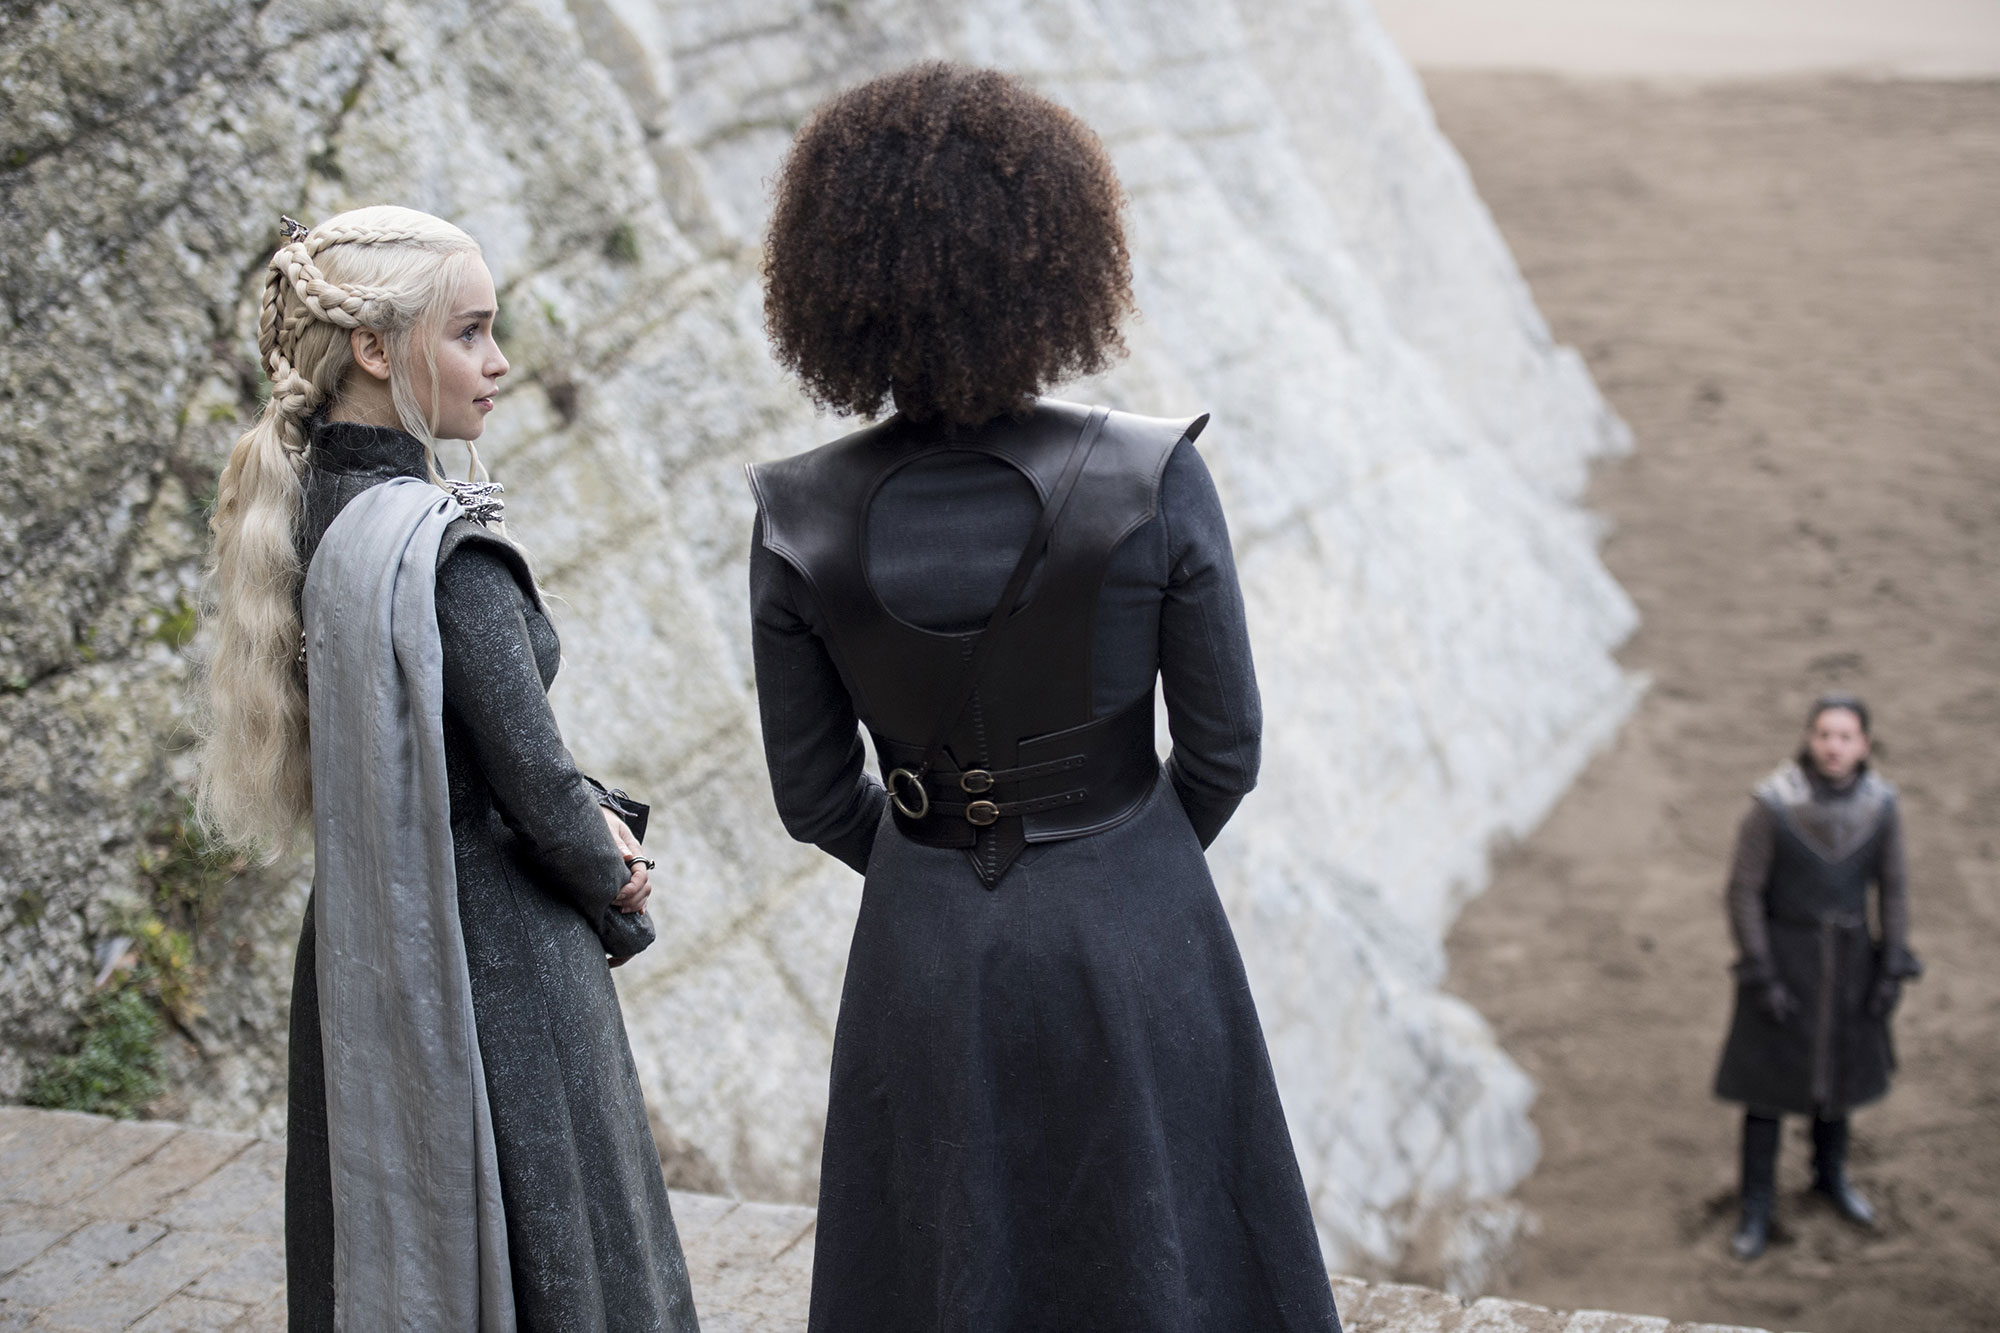 Emilia Clarke Game of Thrones braids hairstyles hair Nathalie Emmanual & Kit Harrington - Overlapping braids added some edge to her simple low ponytail in season seven.